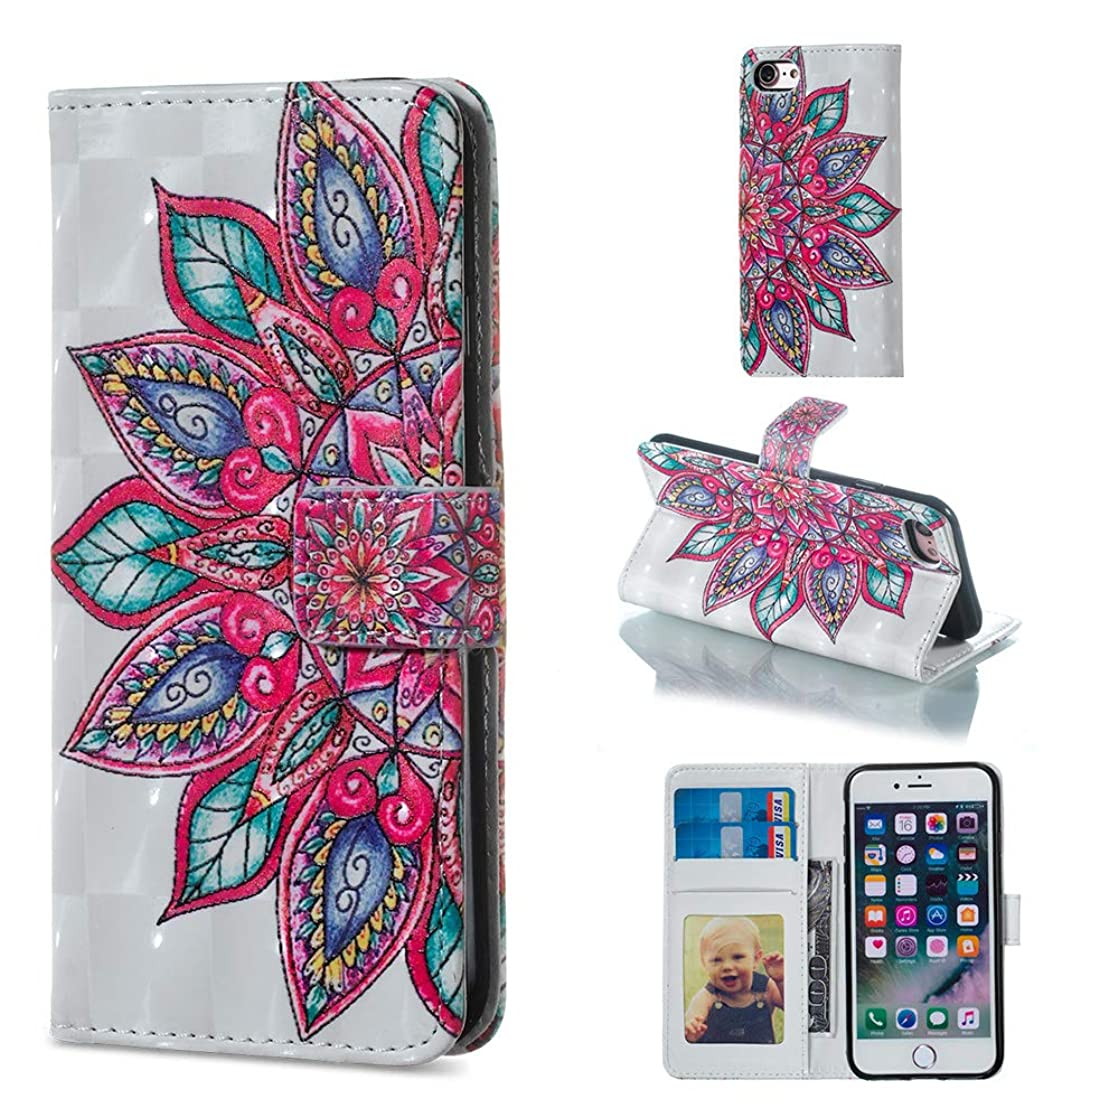 Gostyle Wallet Case for iPhone 6 Plus,iPhone 6S Plus Case,Colorful 3D Painting Pattern Leather Case with Card Holder,Flip Book Style Magnetic Closure Stand Cover-Mandala Flower